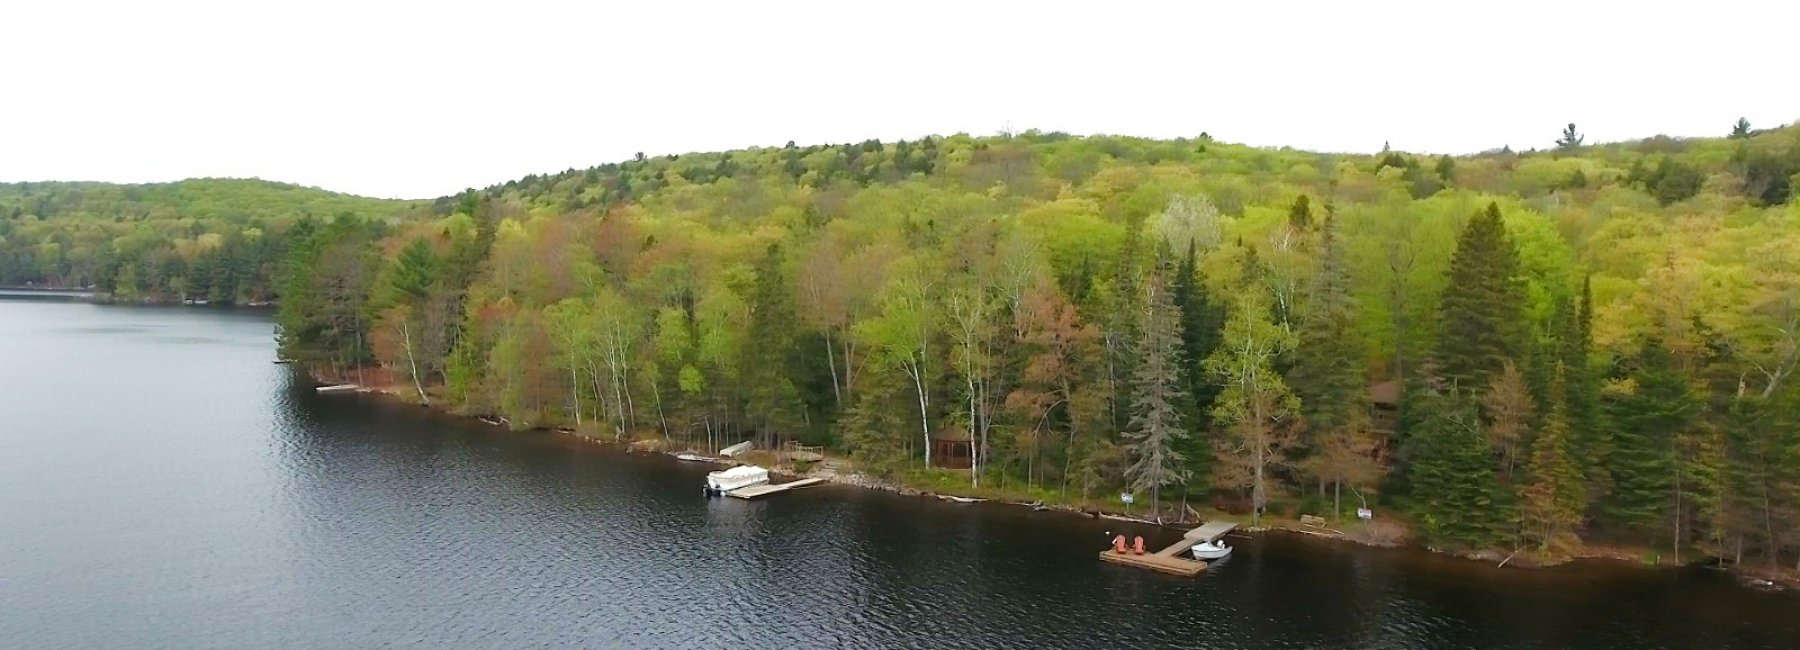 1270 Johnson Bay Road, Haliburton - Percy Lake